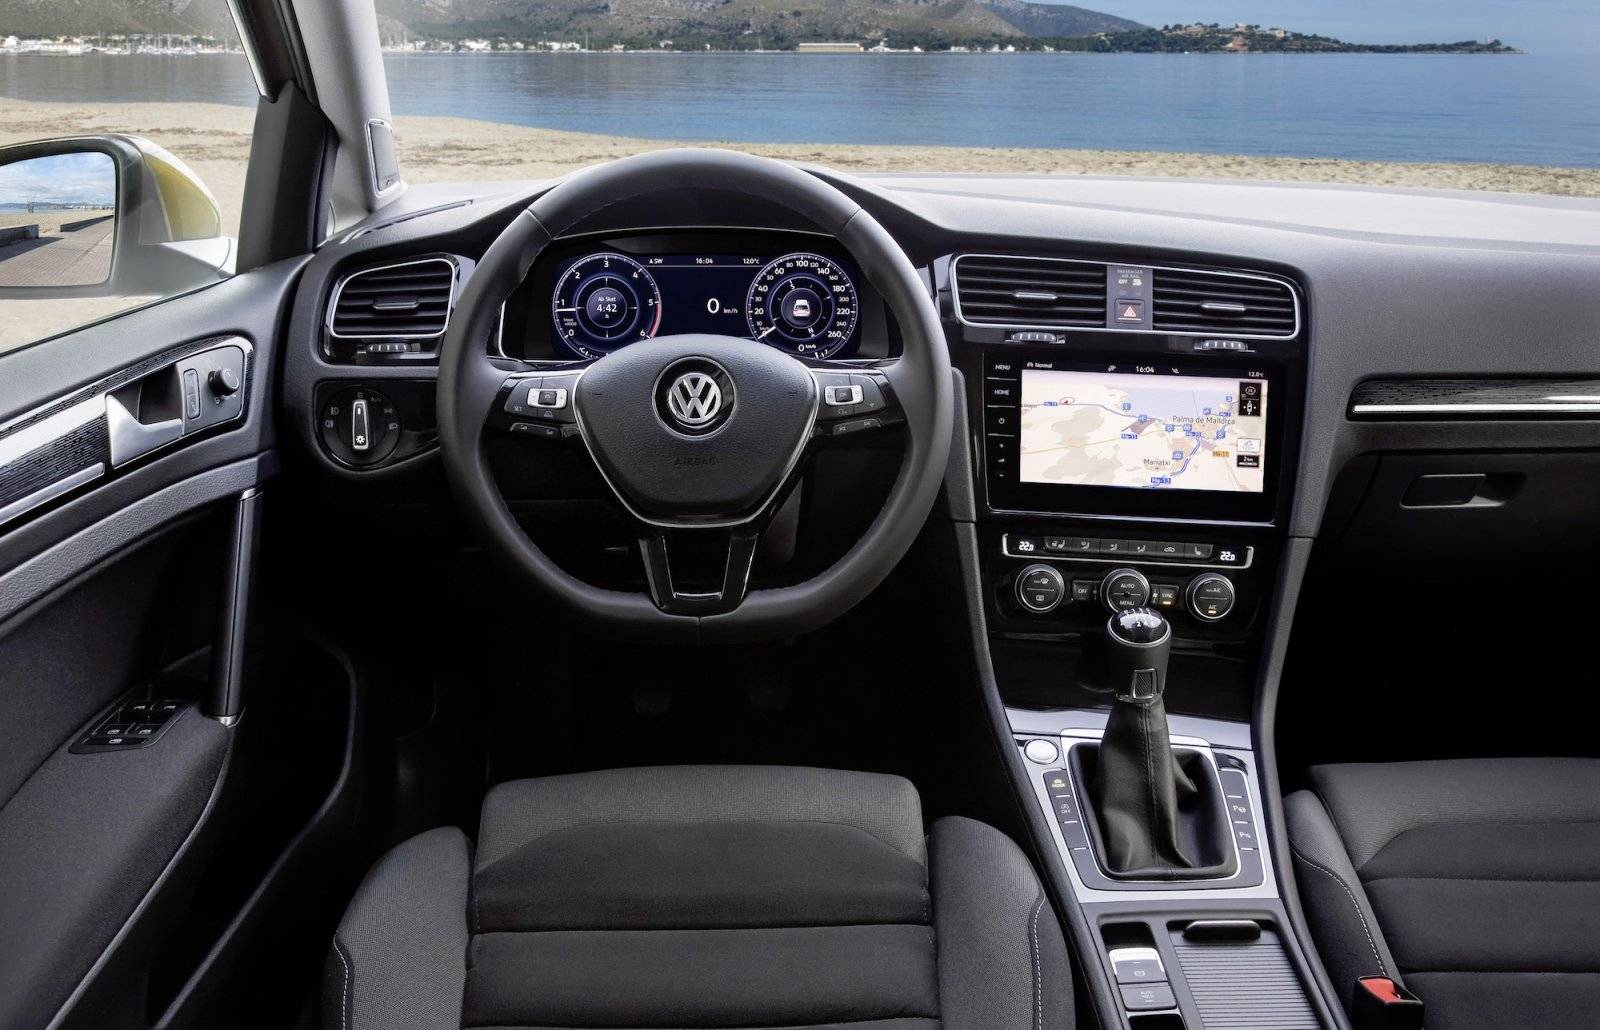 test autotest volkswagen golf autotests. Black Bedroom Furniture Sets. Home Design Ideas